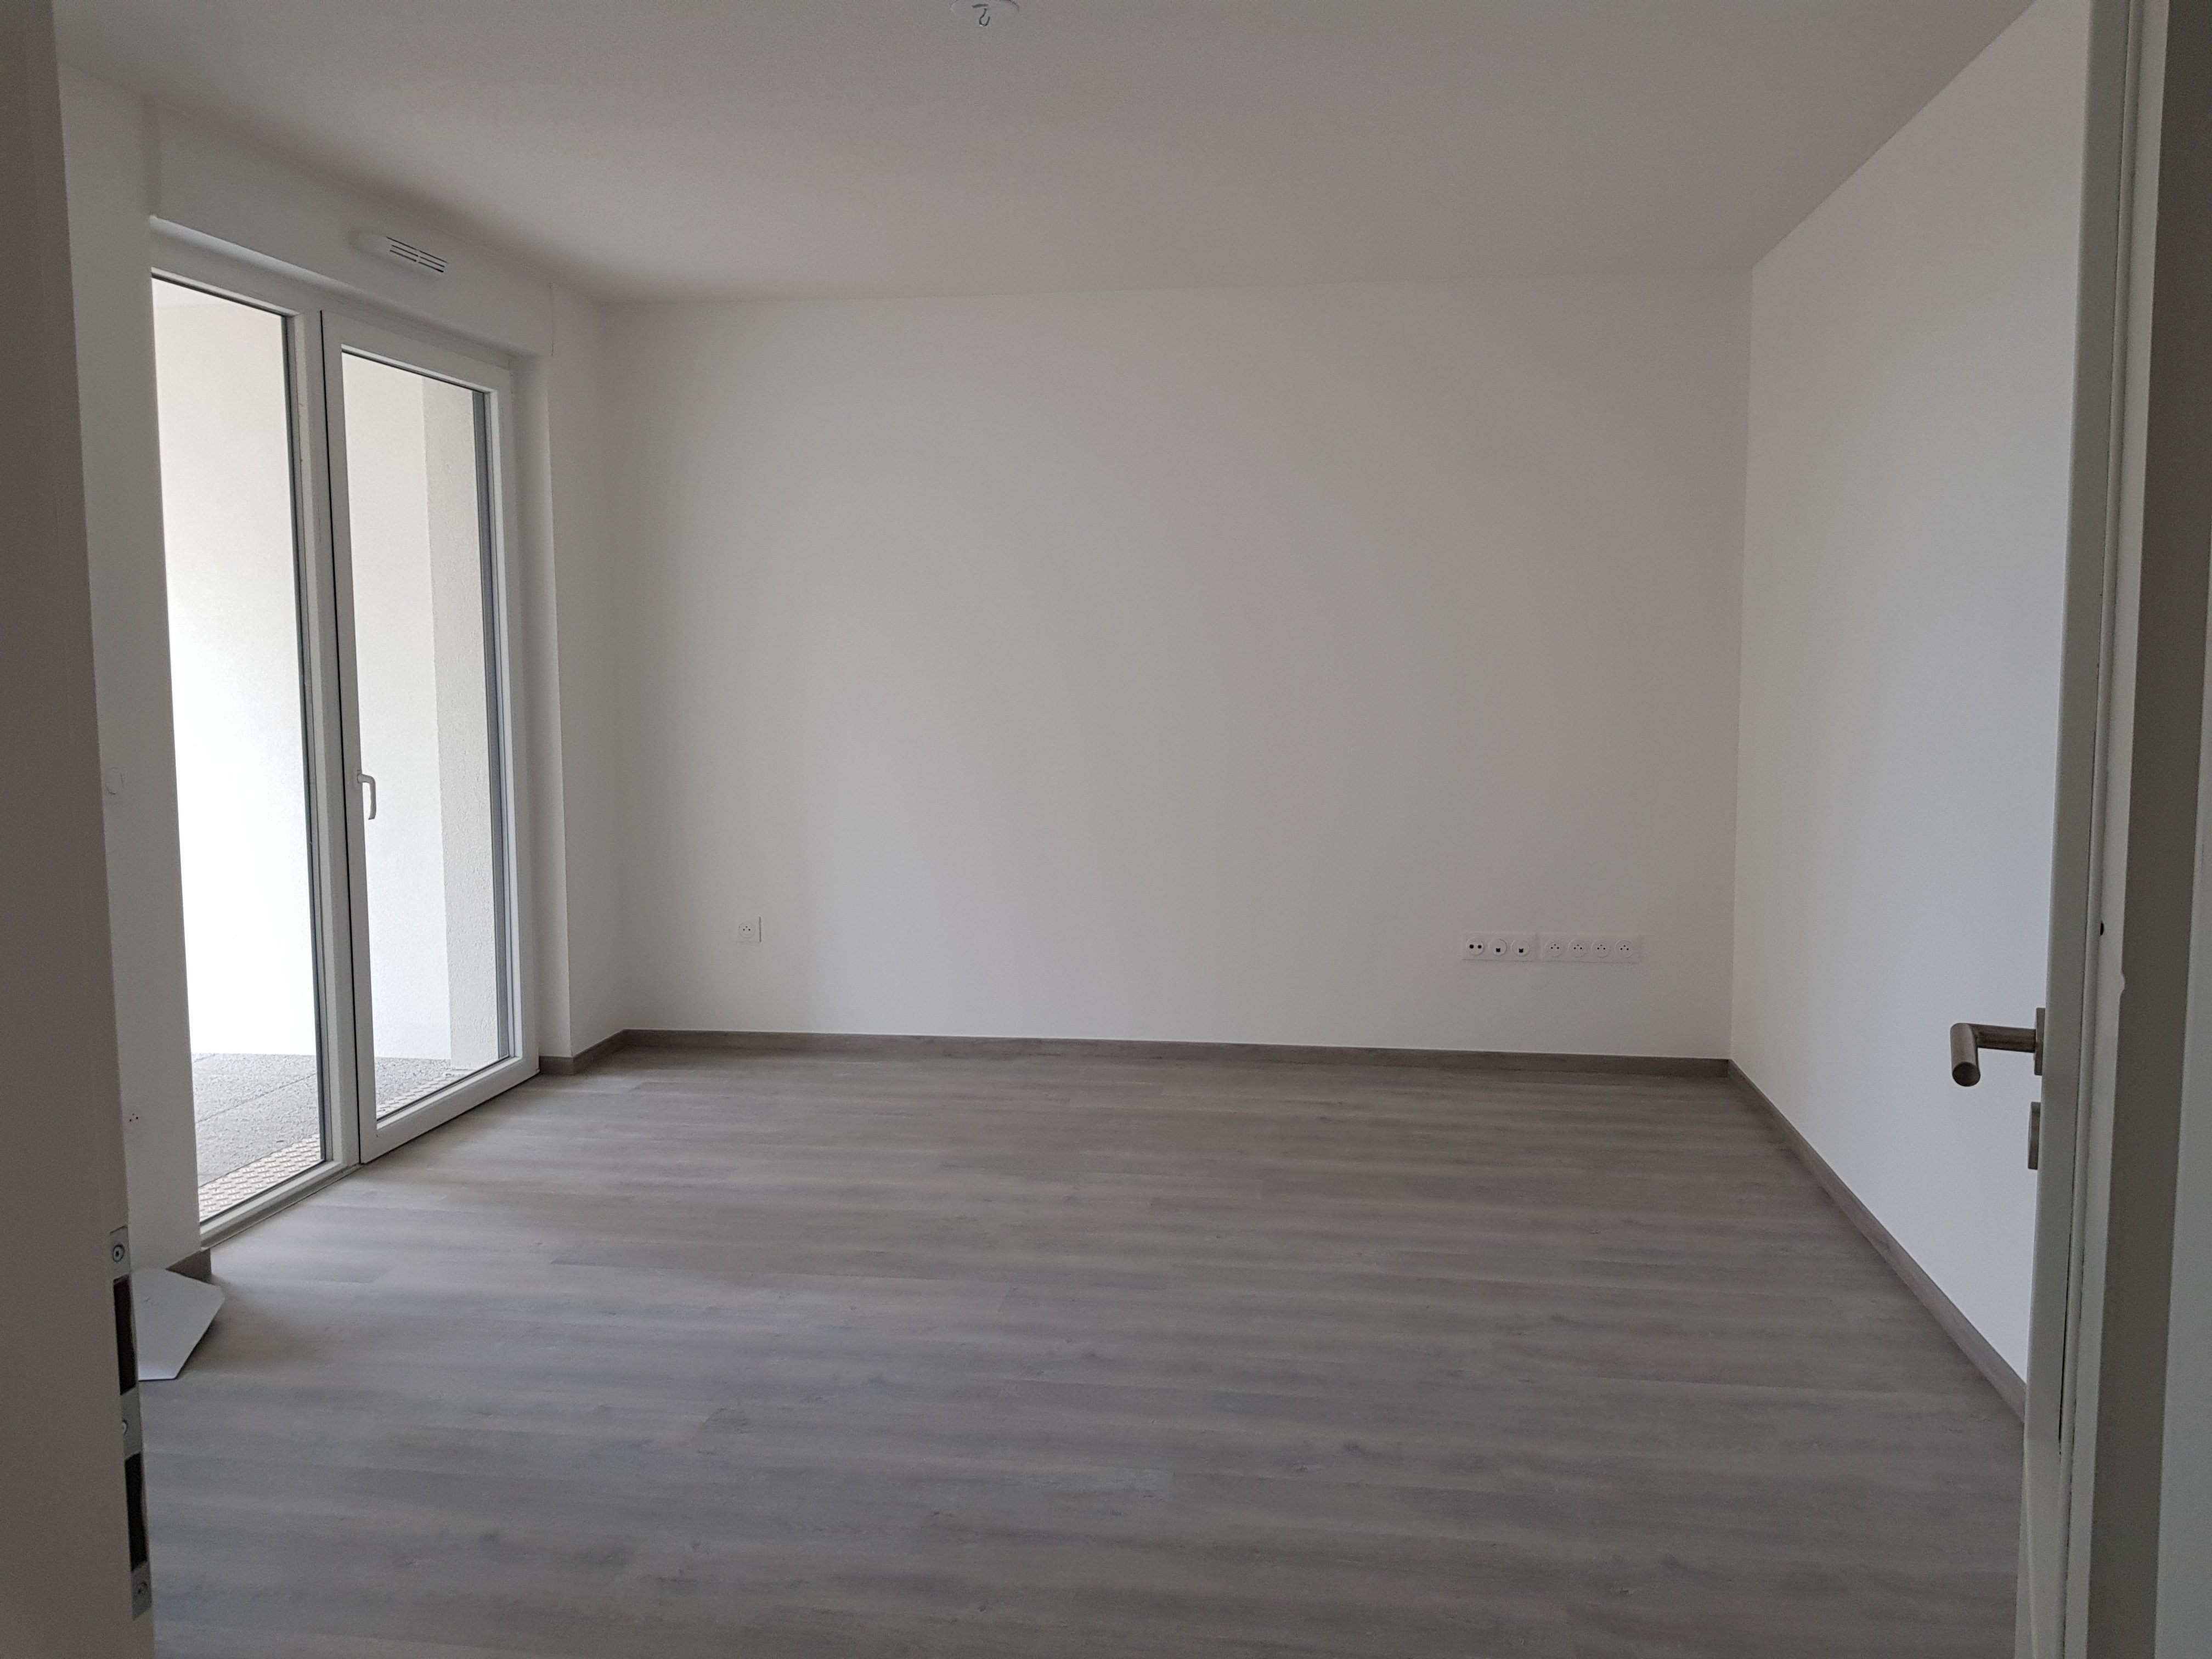 Location Lingolsheim, appartement, 61.67m²